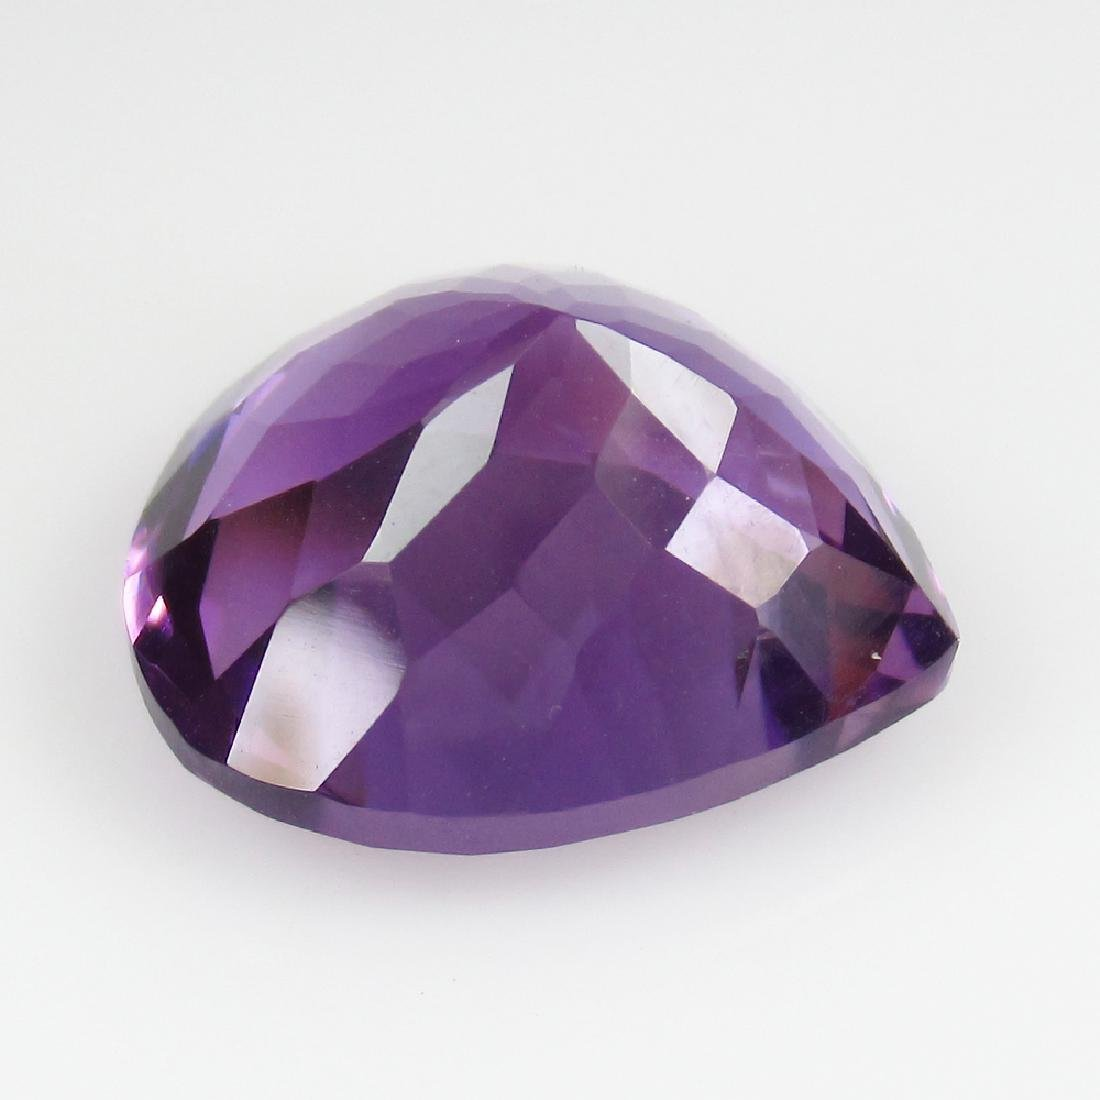 10.24 Ct Genuine Loose Amethyst Excellent Pear Cut - 2